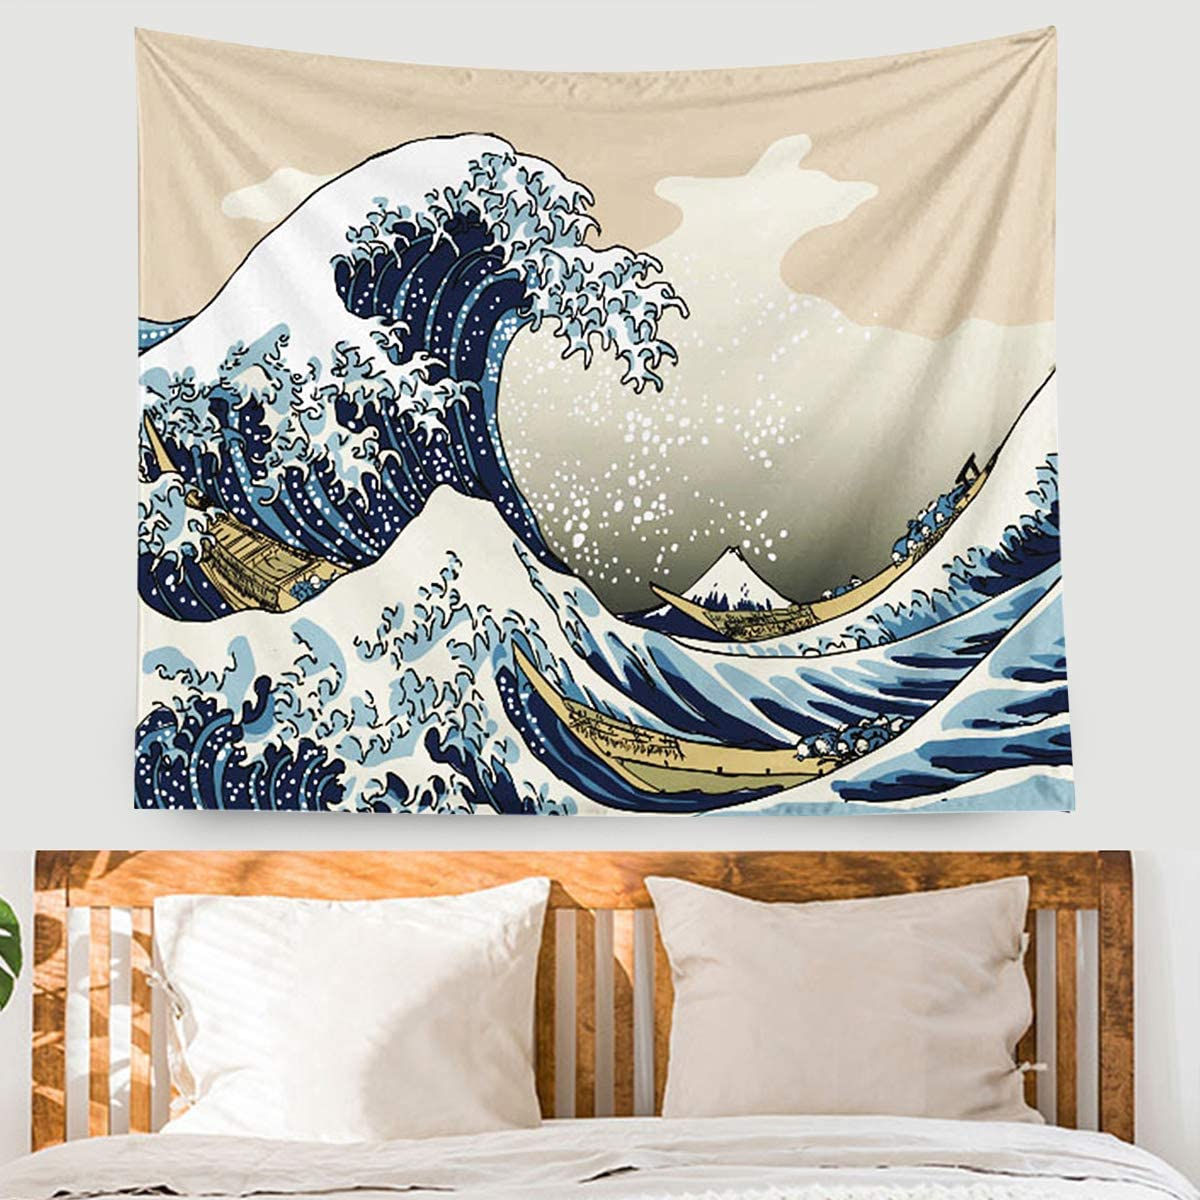 EONTHEN Great Wave Kanagawa Tapestry Wall Hanging Watercolor Nature Tapestry Thicker Vsco Tapestry Wall Art for Living Room Bedroom Dorm Wall Decor Vsco Room Decor(51.2''x59.1'')